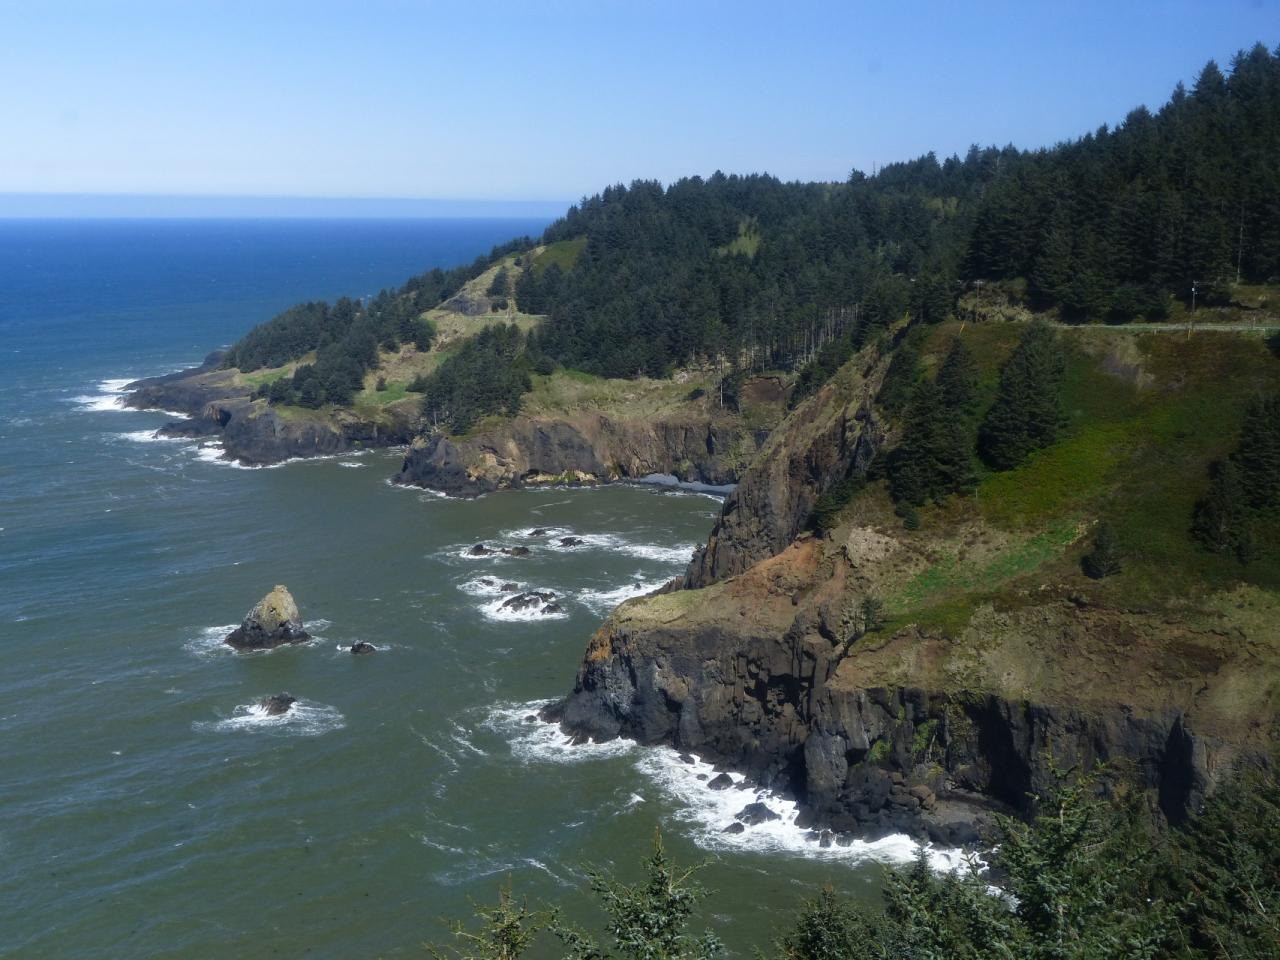 View to NNW of north end of mile 226 from viewing area in Lookout at Otter Crest State Wayside.